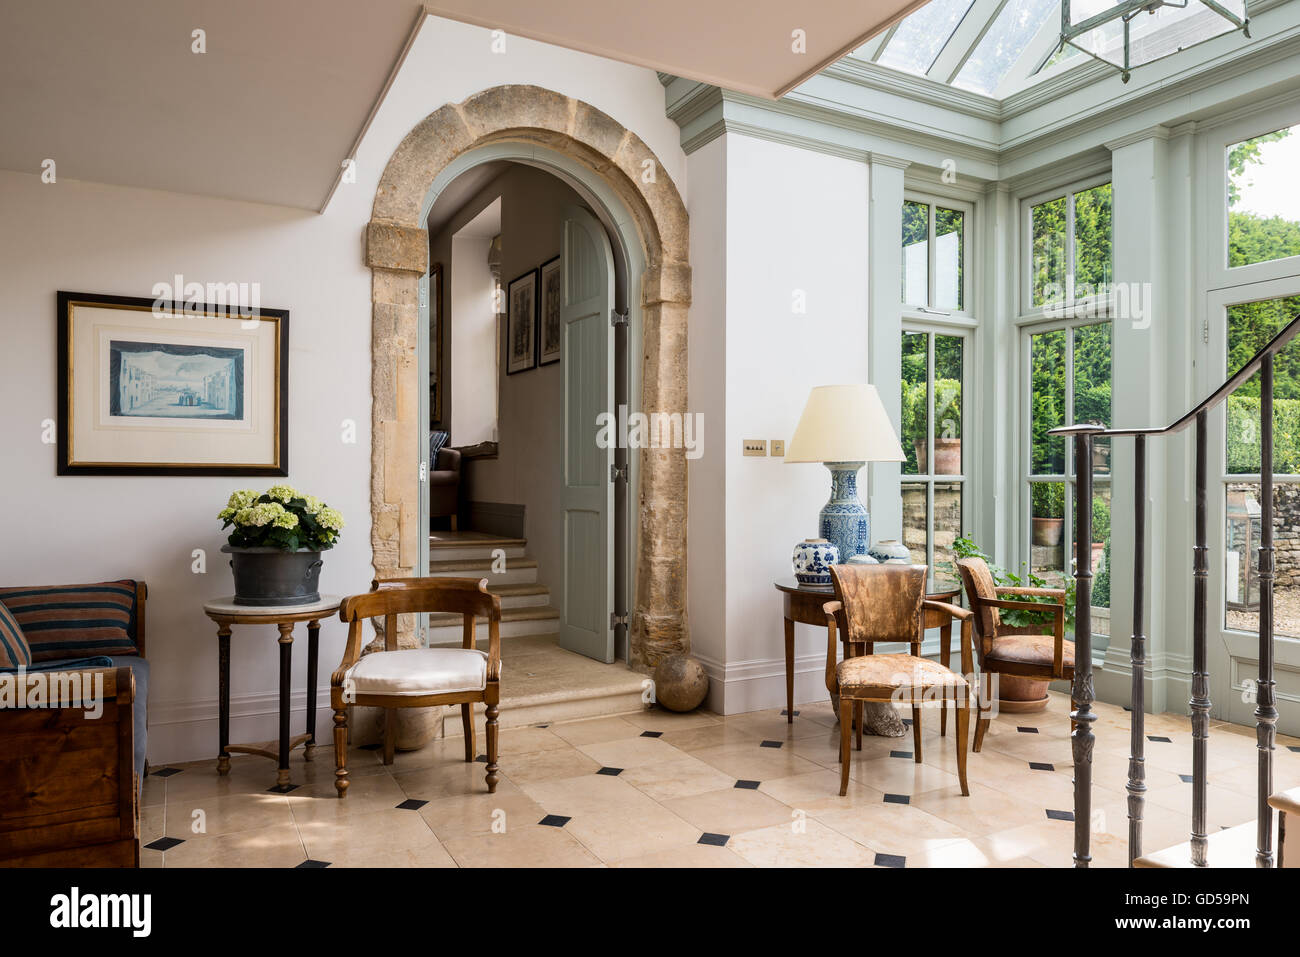 stone hall table. Old Leather Bridge Chairs And Round Table In Entrance Hall With Stone Arch Glass Ceiling